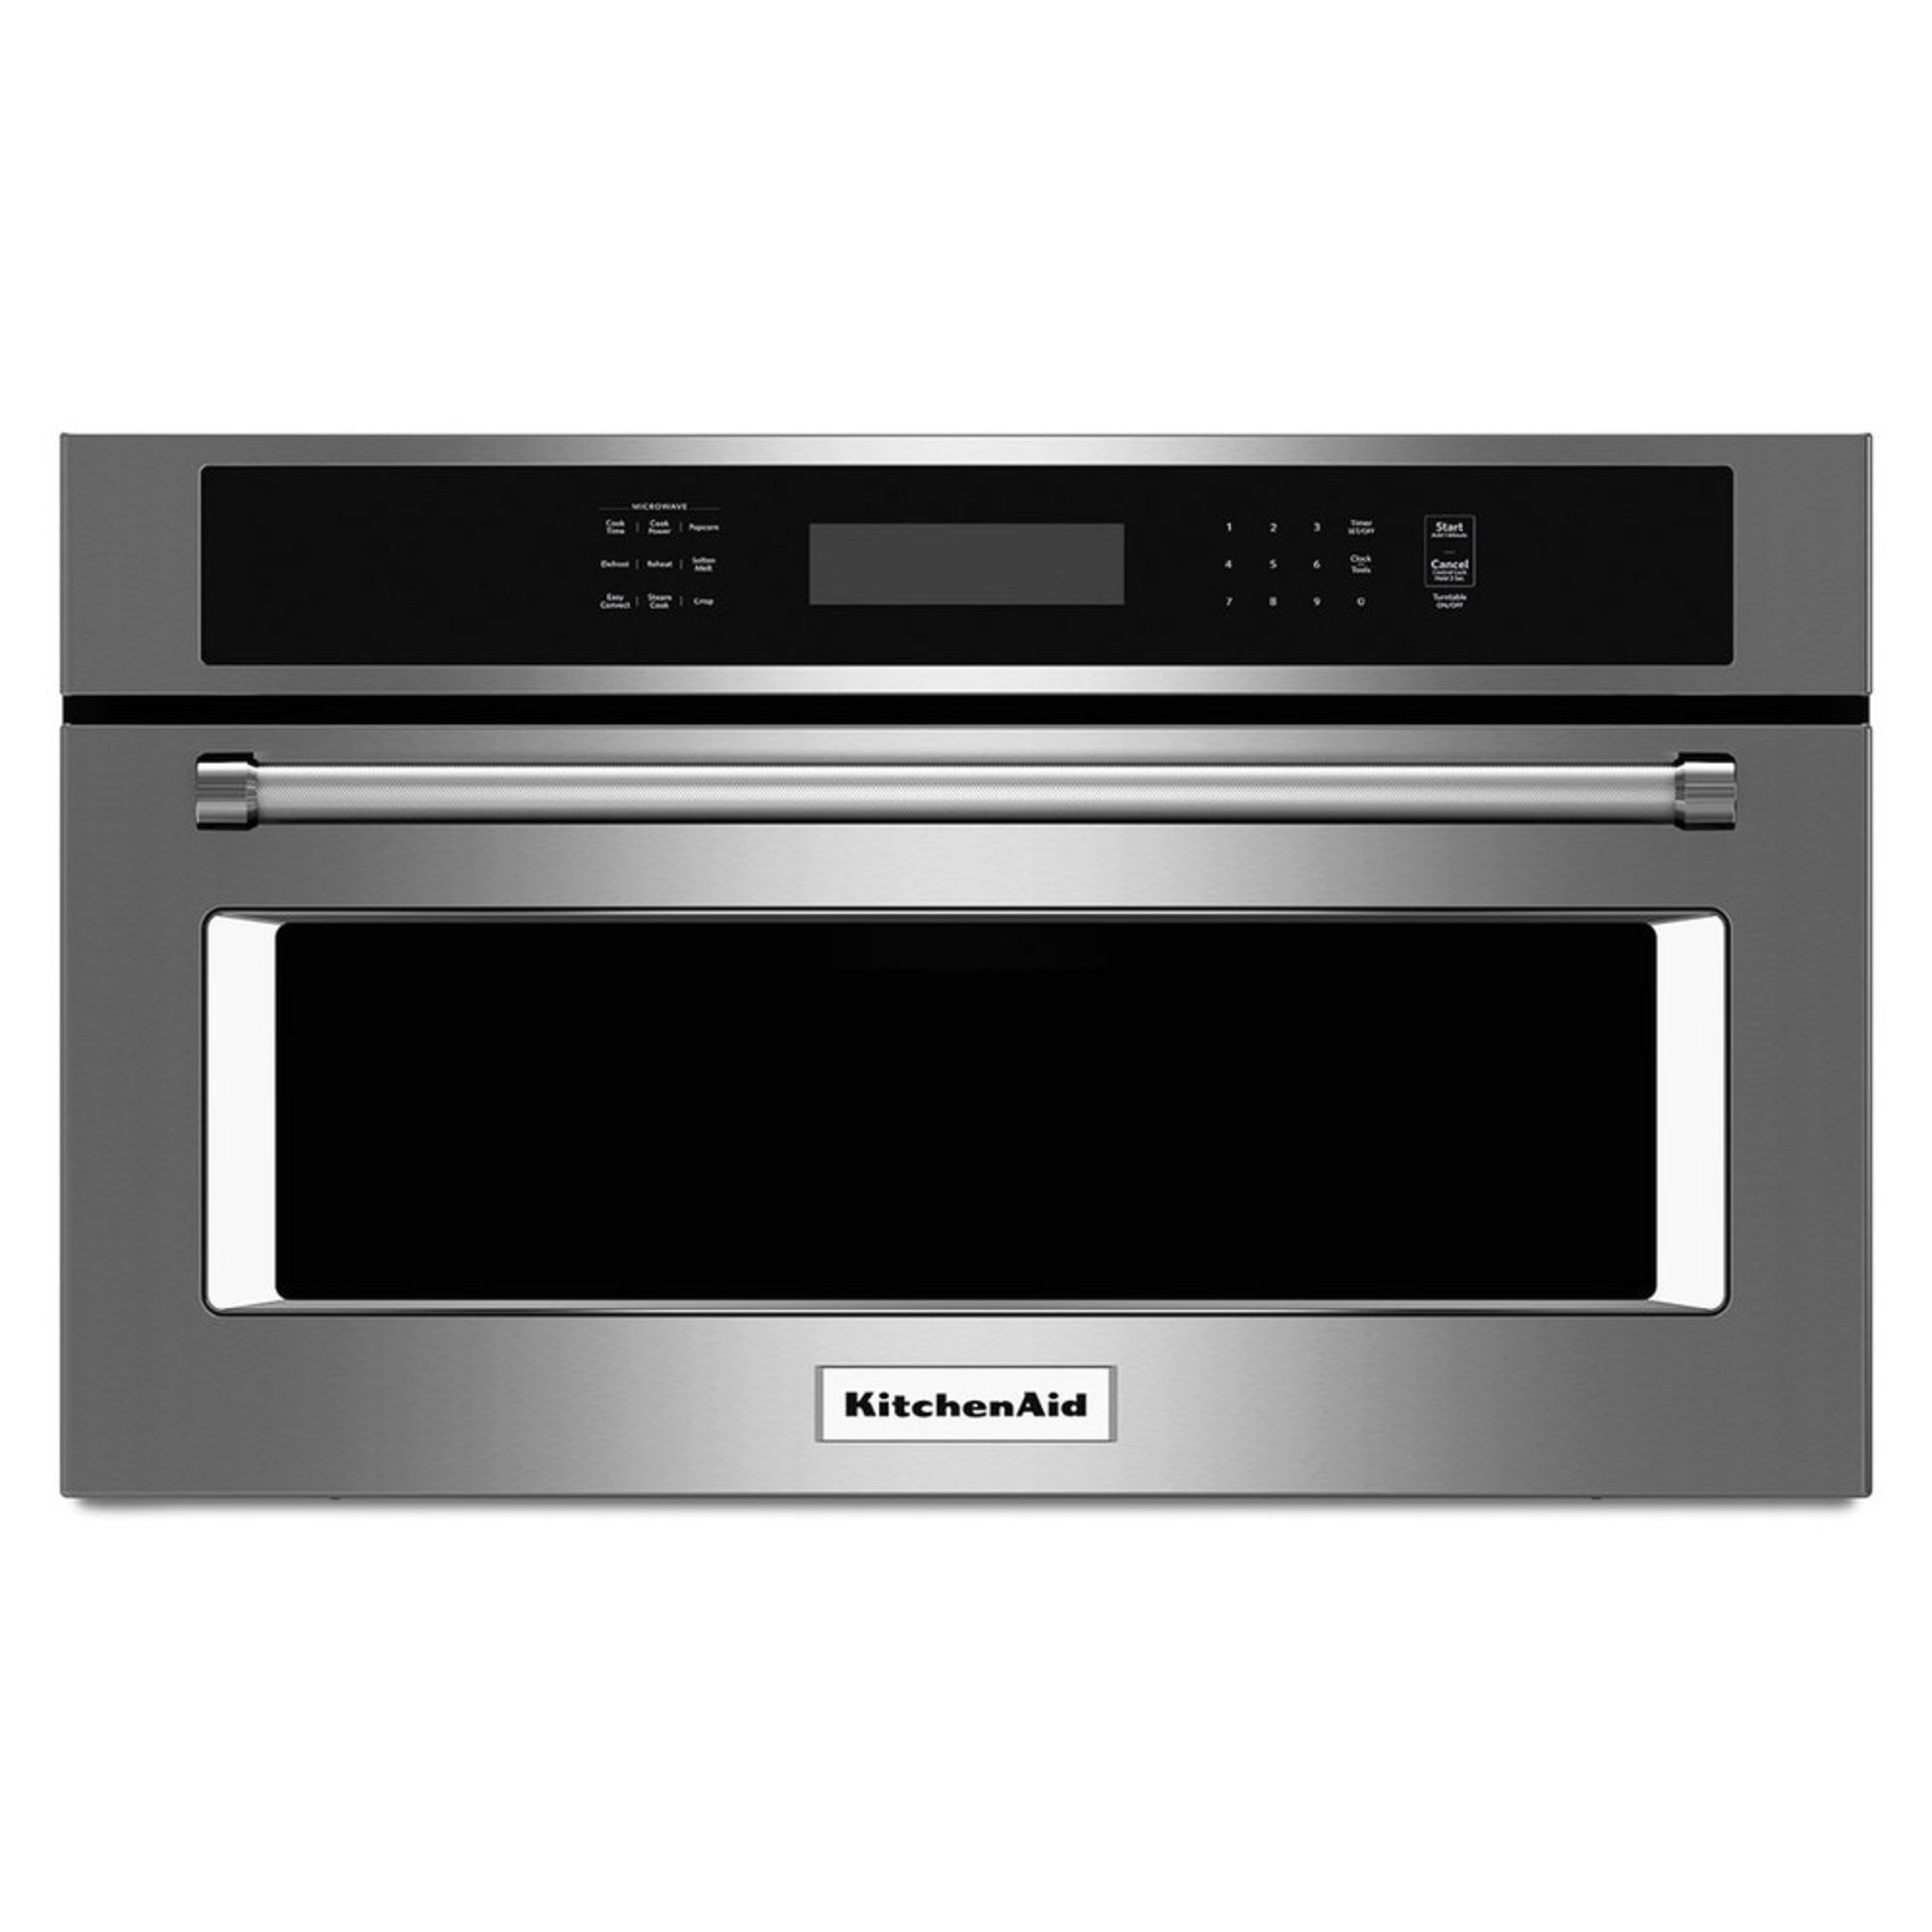 Microwave Oven W Convection Cooking